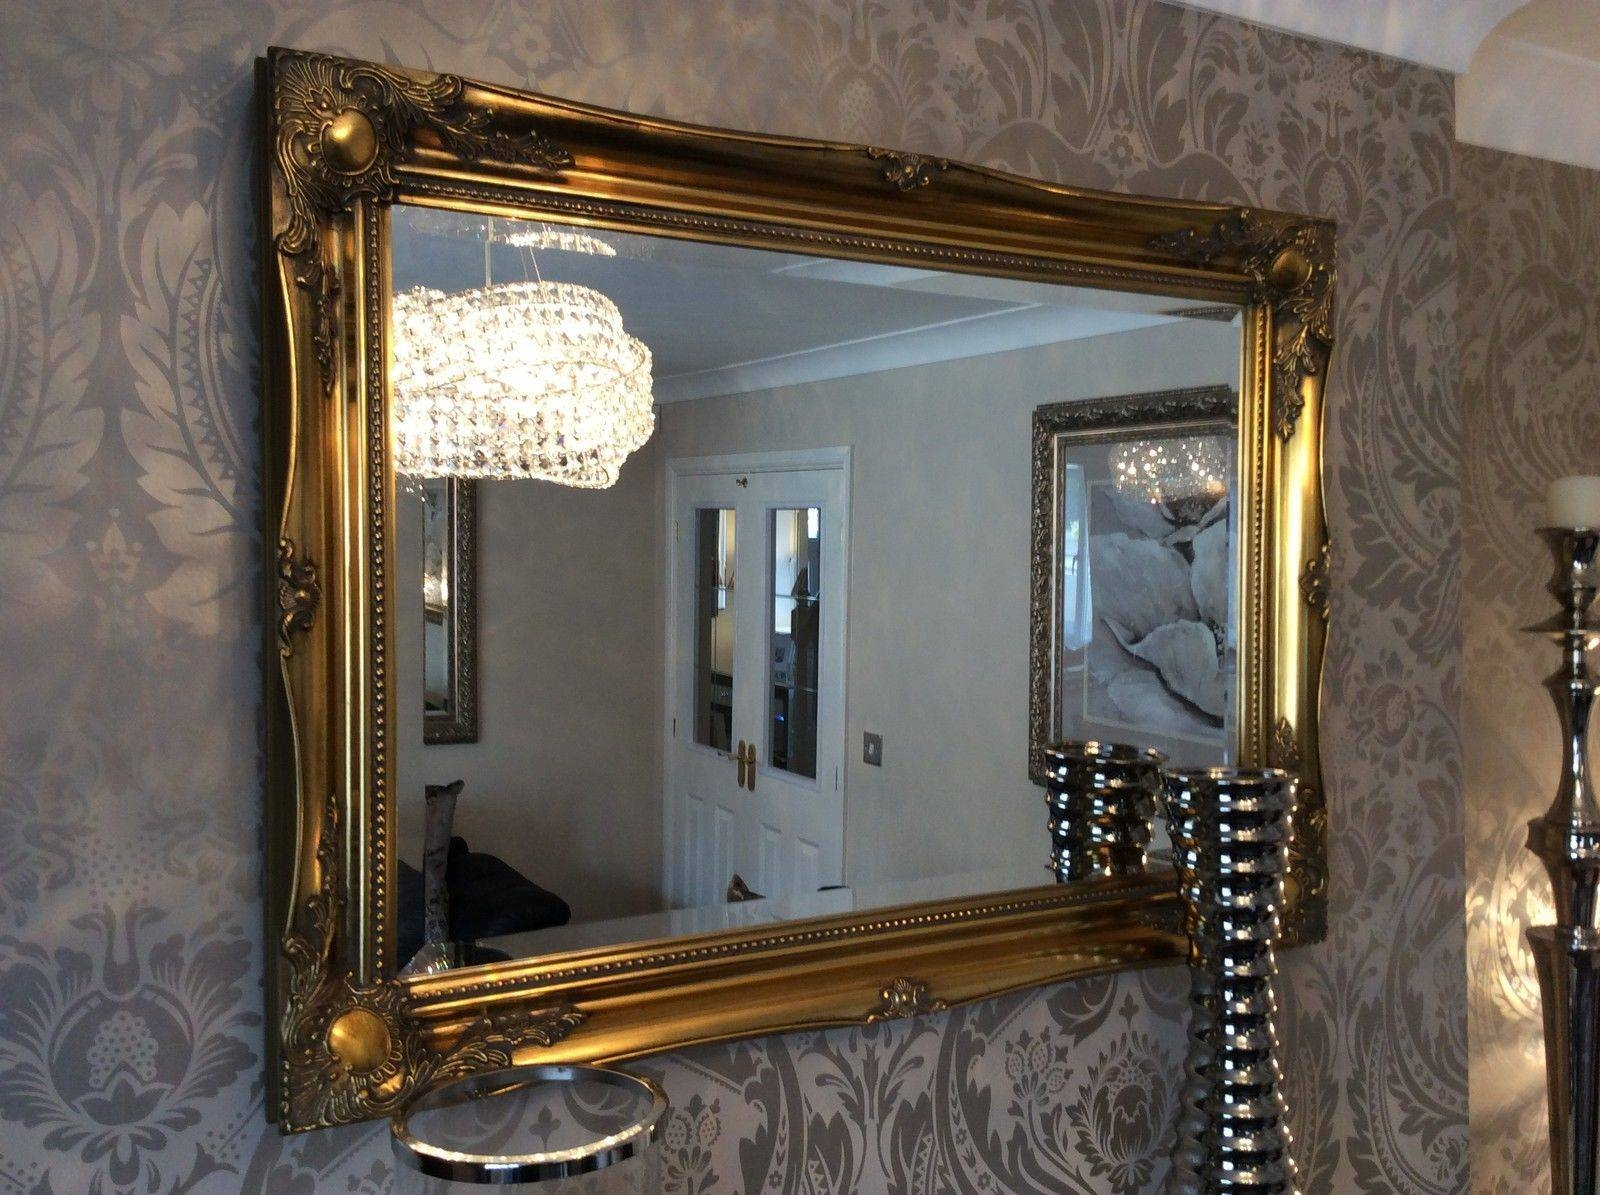 Large Mirrored Picture Frames Uk - Best Frames 2017 with regard to Large Ornate Mirrors For Wall (Image 15 of 25)